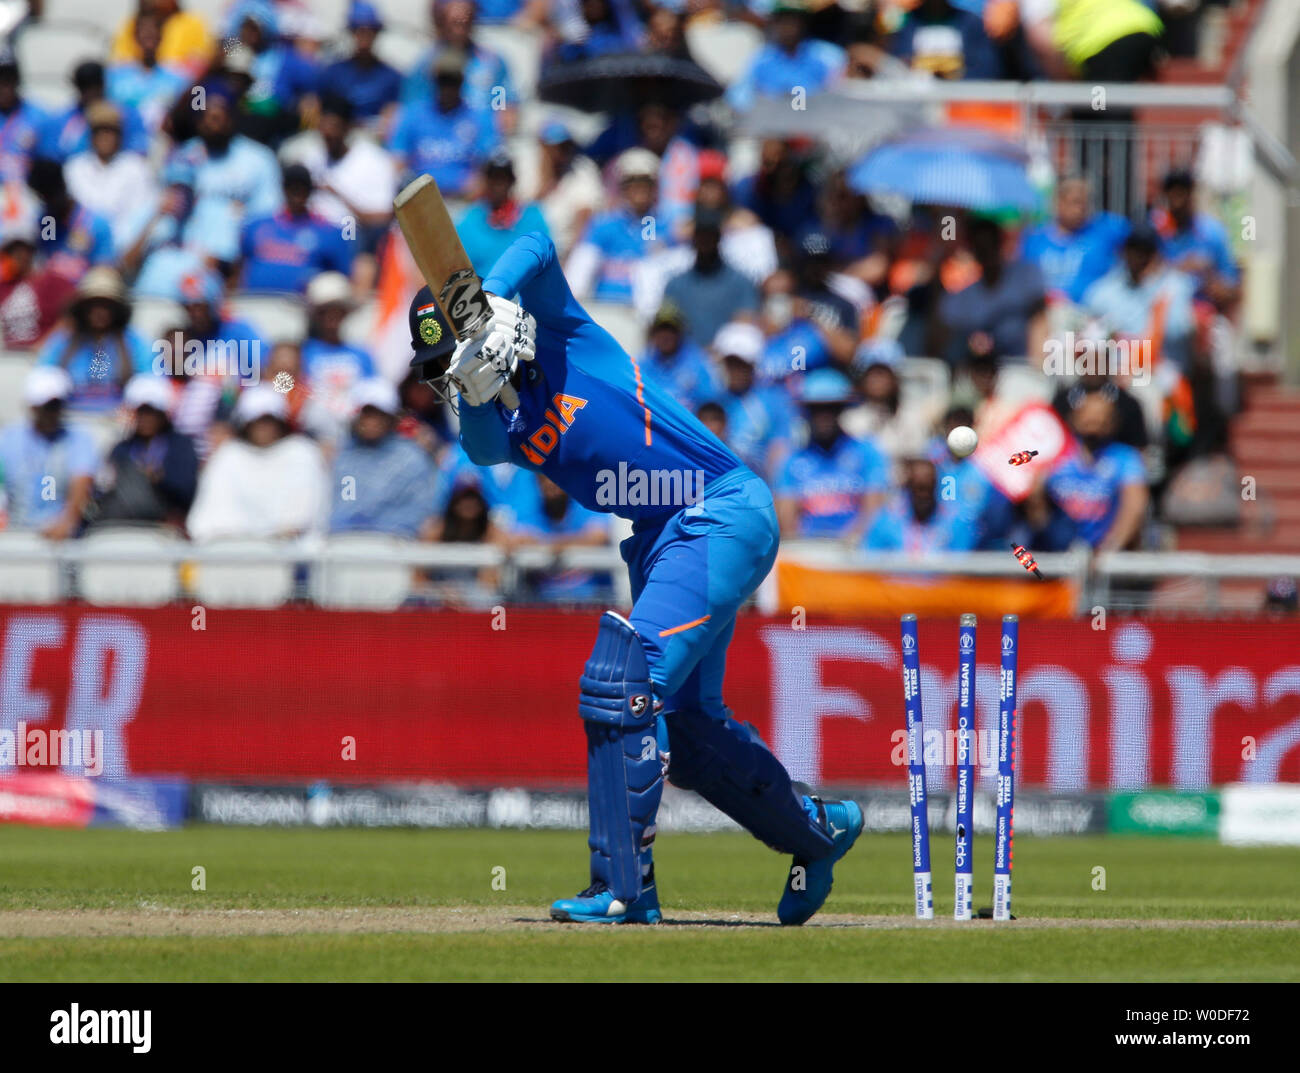 Old Trafford, Manchester, UK. 27th June, 2019. ICC World Cup cricket, West Indies versus India; West Indies captain Jason Holder bowls KL Rahul of India for 48 Credit: Action Plus Sports/Alamy Live News - Stock Image